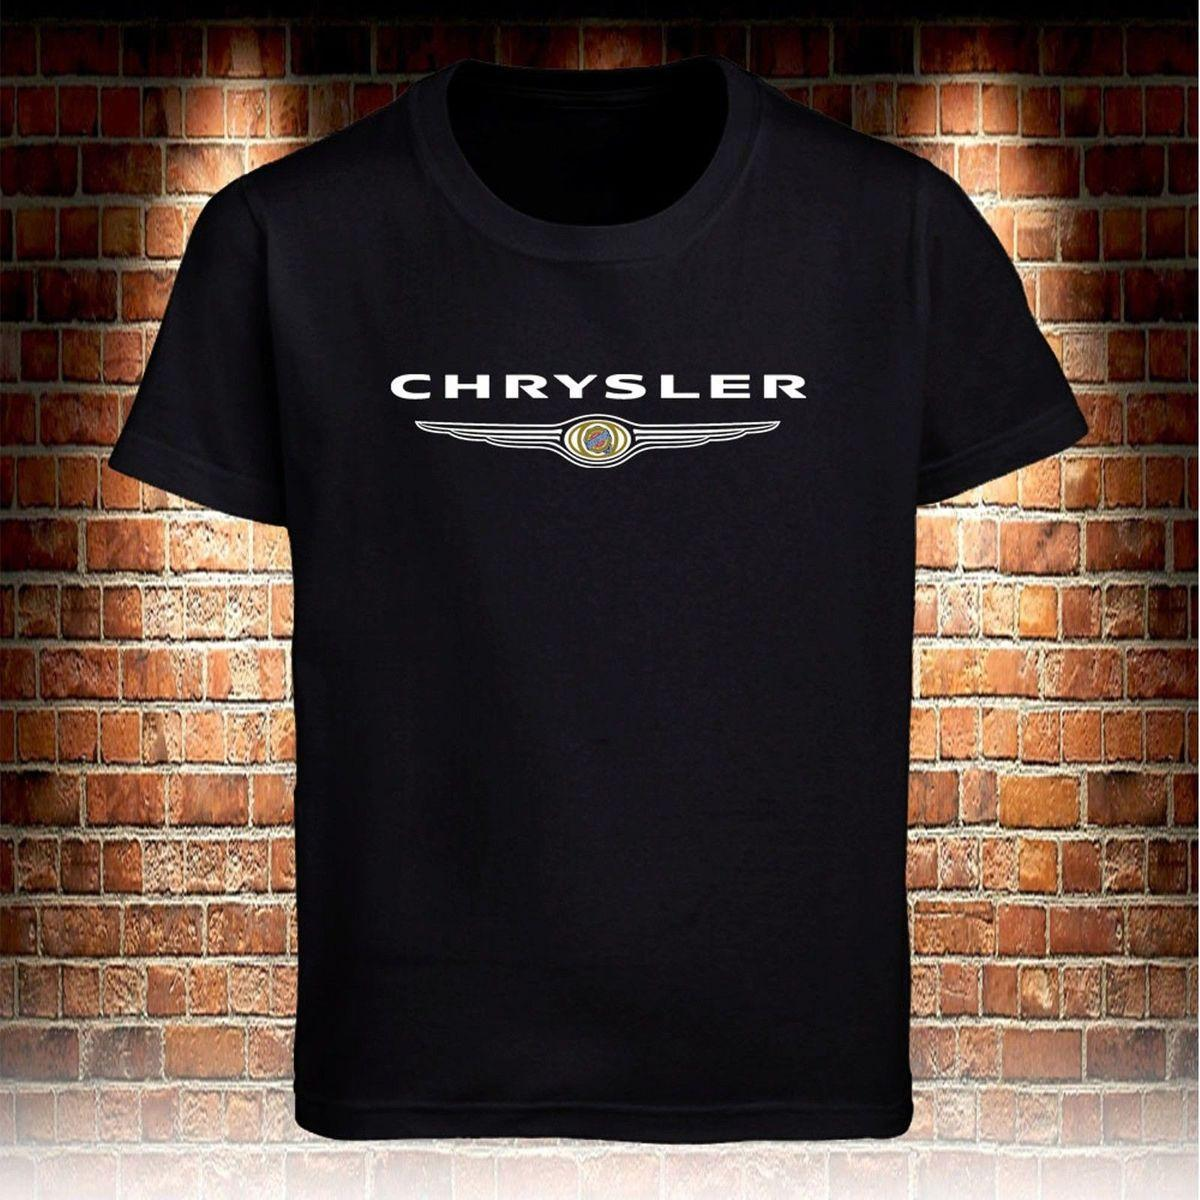 5c85e02a152b Black T-Shirt Chrysler Truck Men's T shirt S to 3XL Cotton Low Price Top Tee  For Teen Boys Homme High Quality